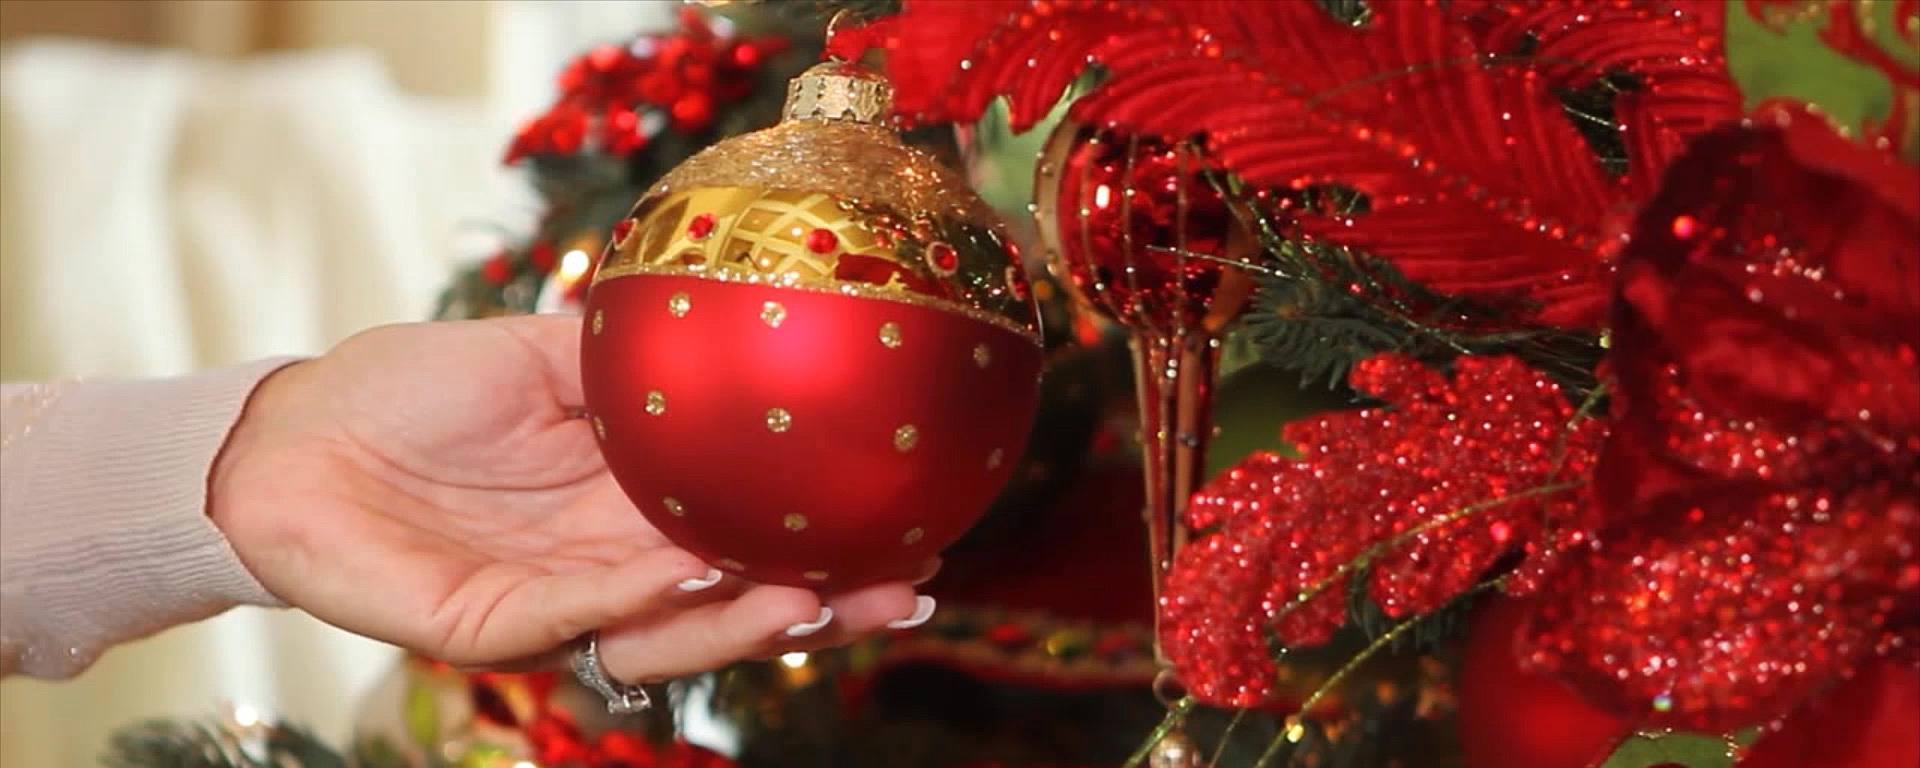 how to decorate a designer tree home style - How To Decorate A Designer Christmas Tree